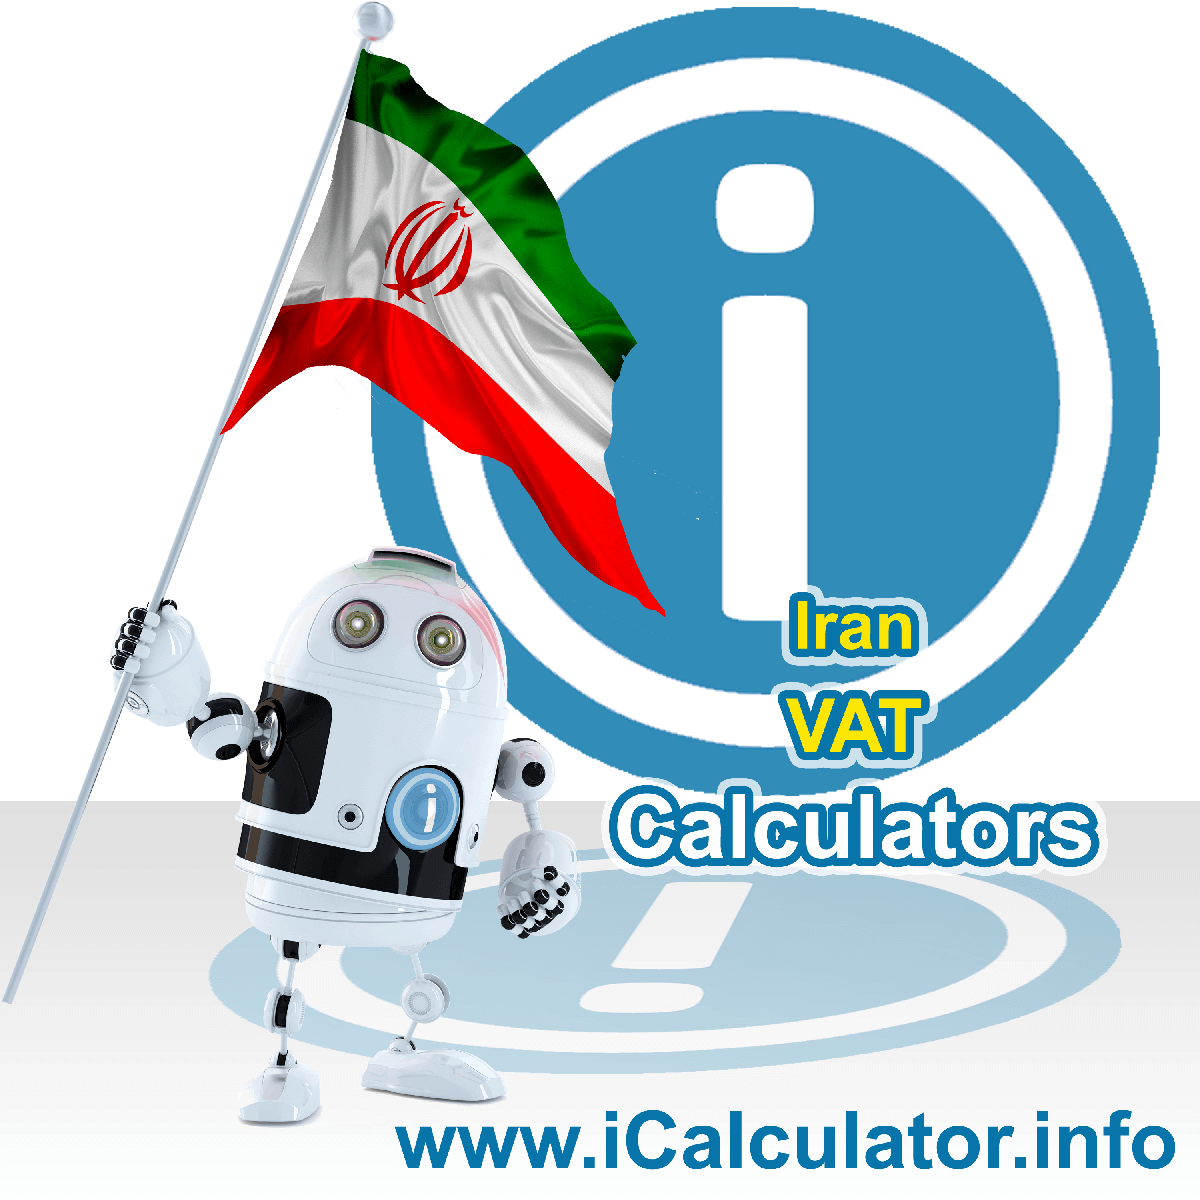 Iran VAT Calculator. This image shows the Iran flag and information relating to the VAT formula used for calculating Value Added Tax in Iran using the Iran VAT Calculator in 2020